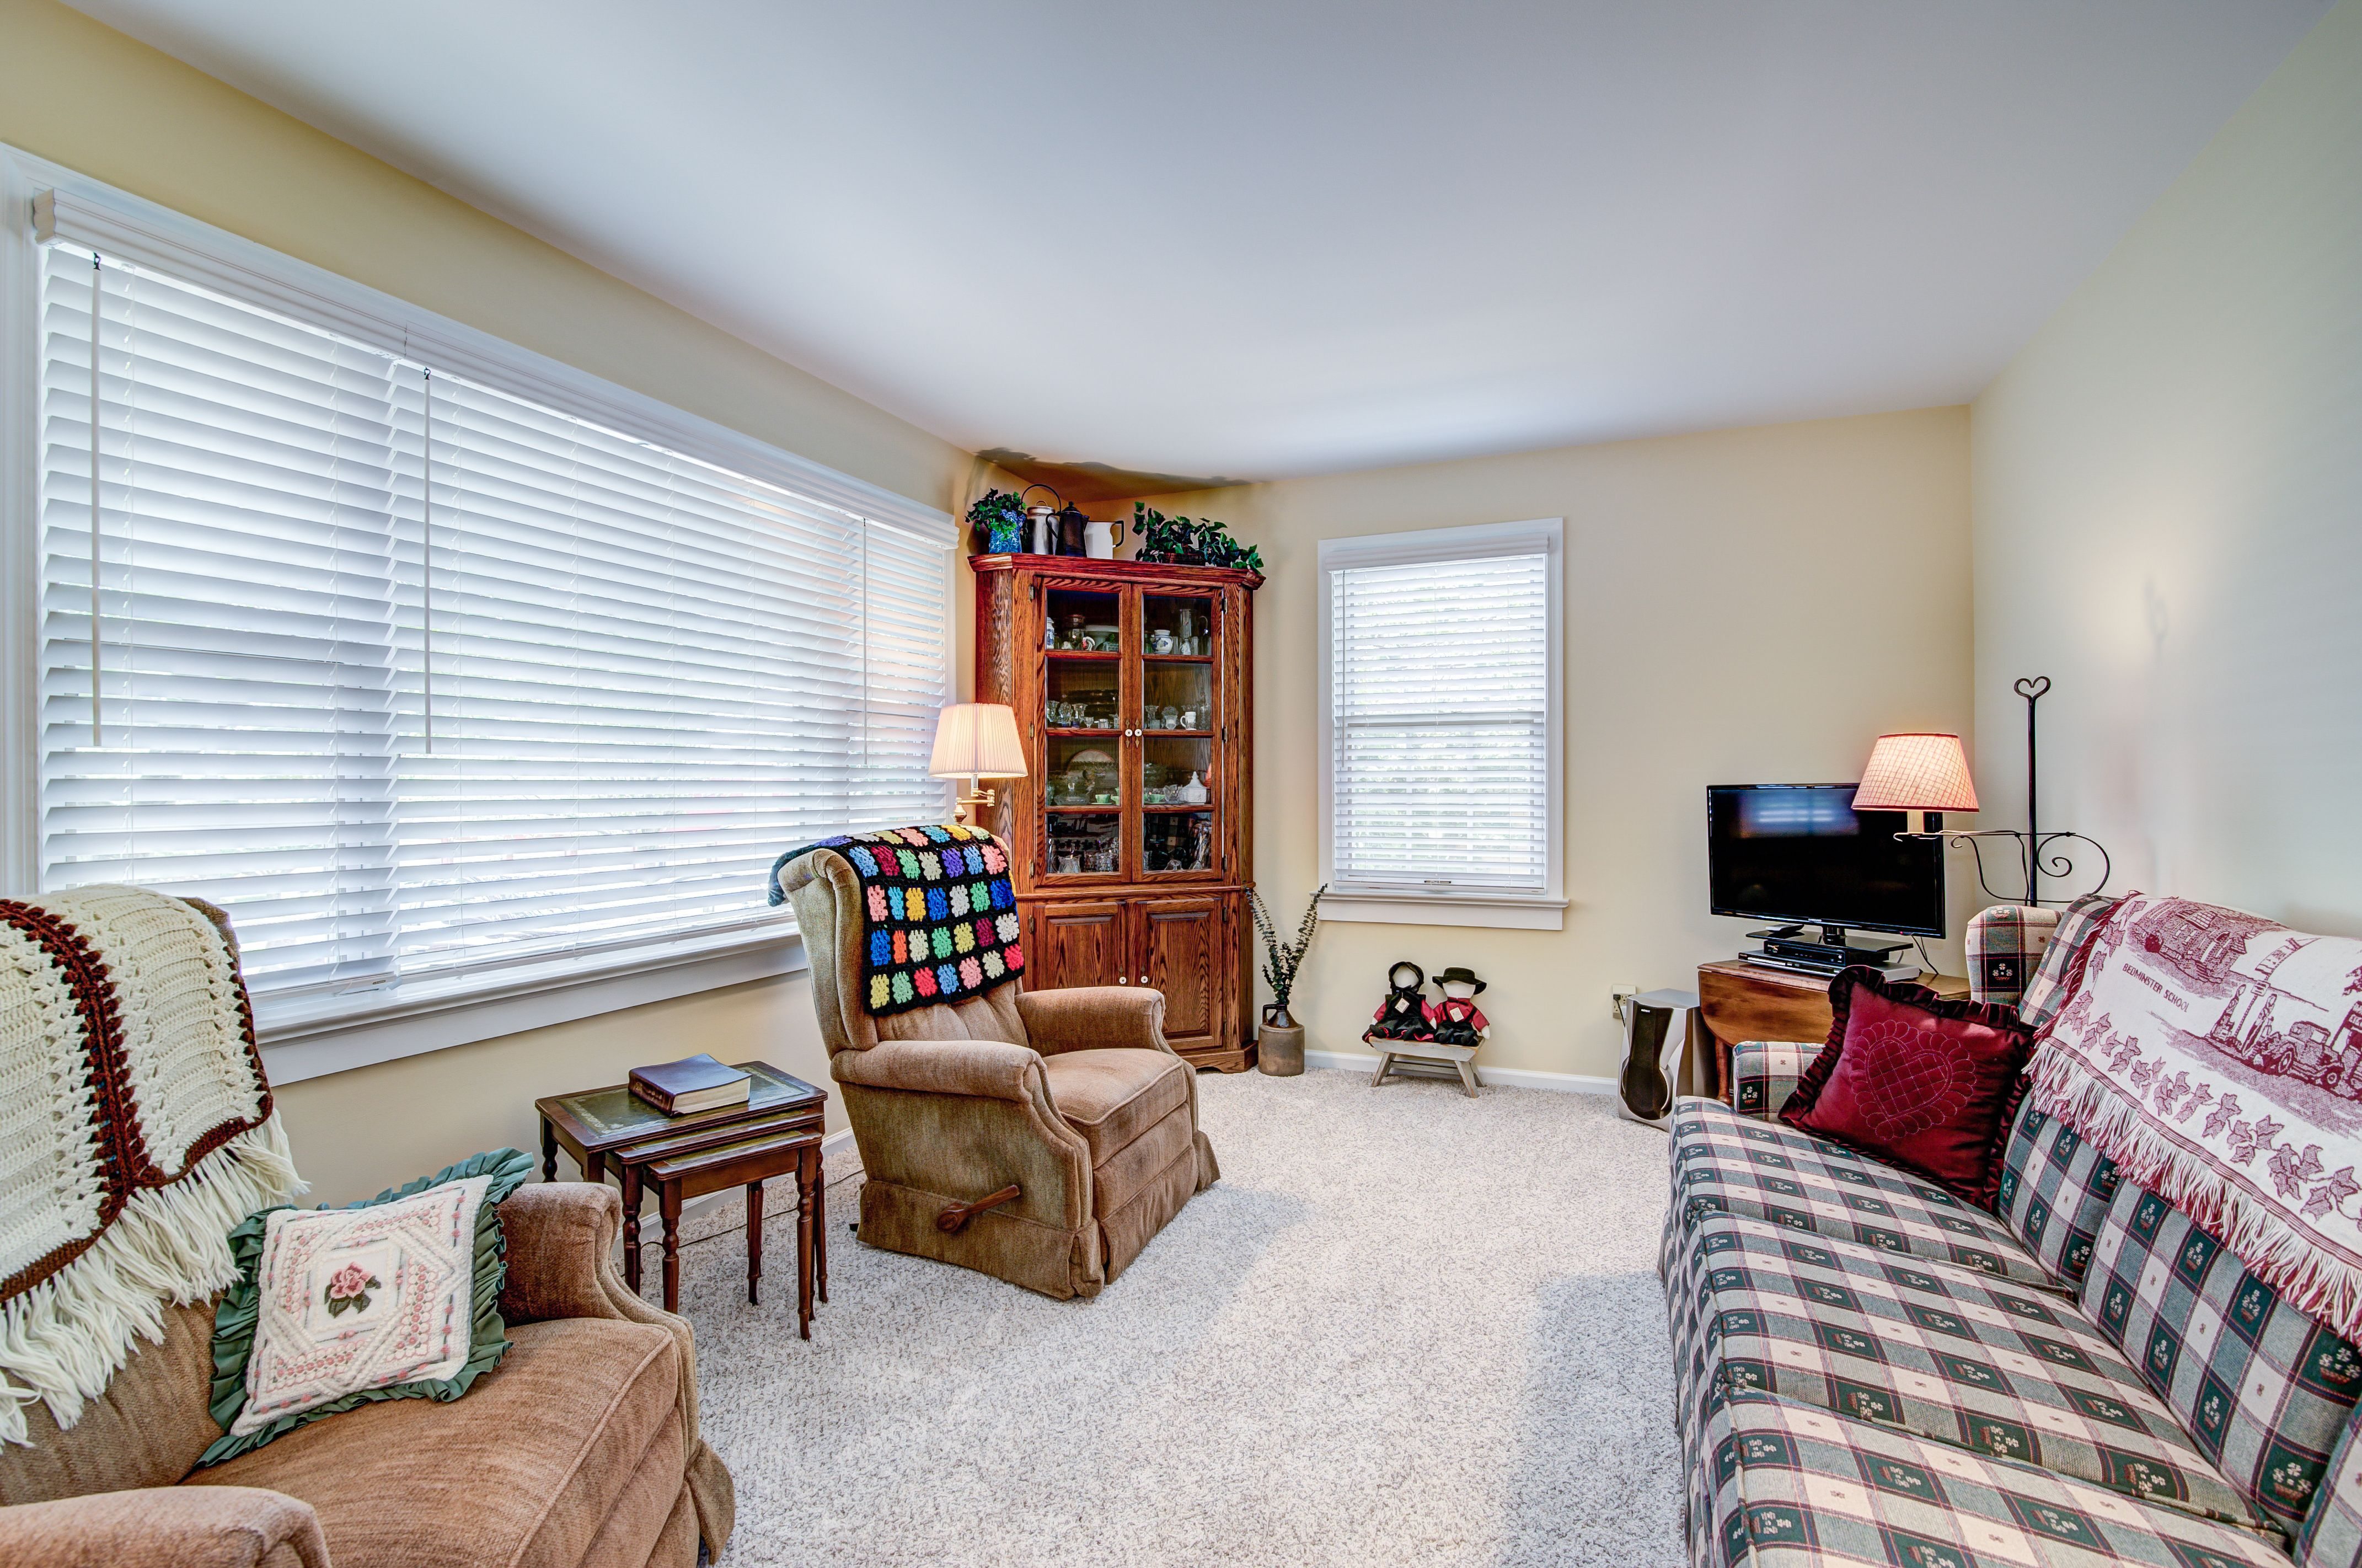 Residential Living - One Bedroom Cottage #livingbranches ...